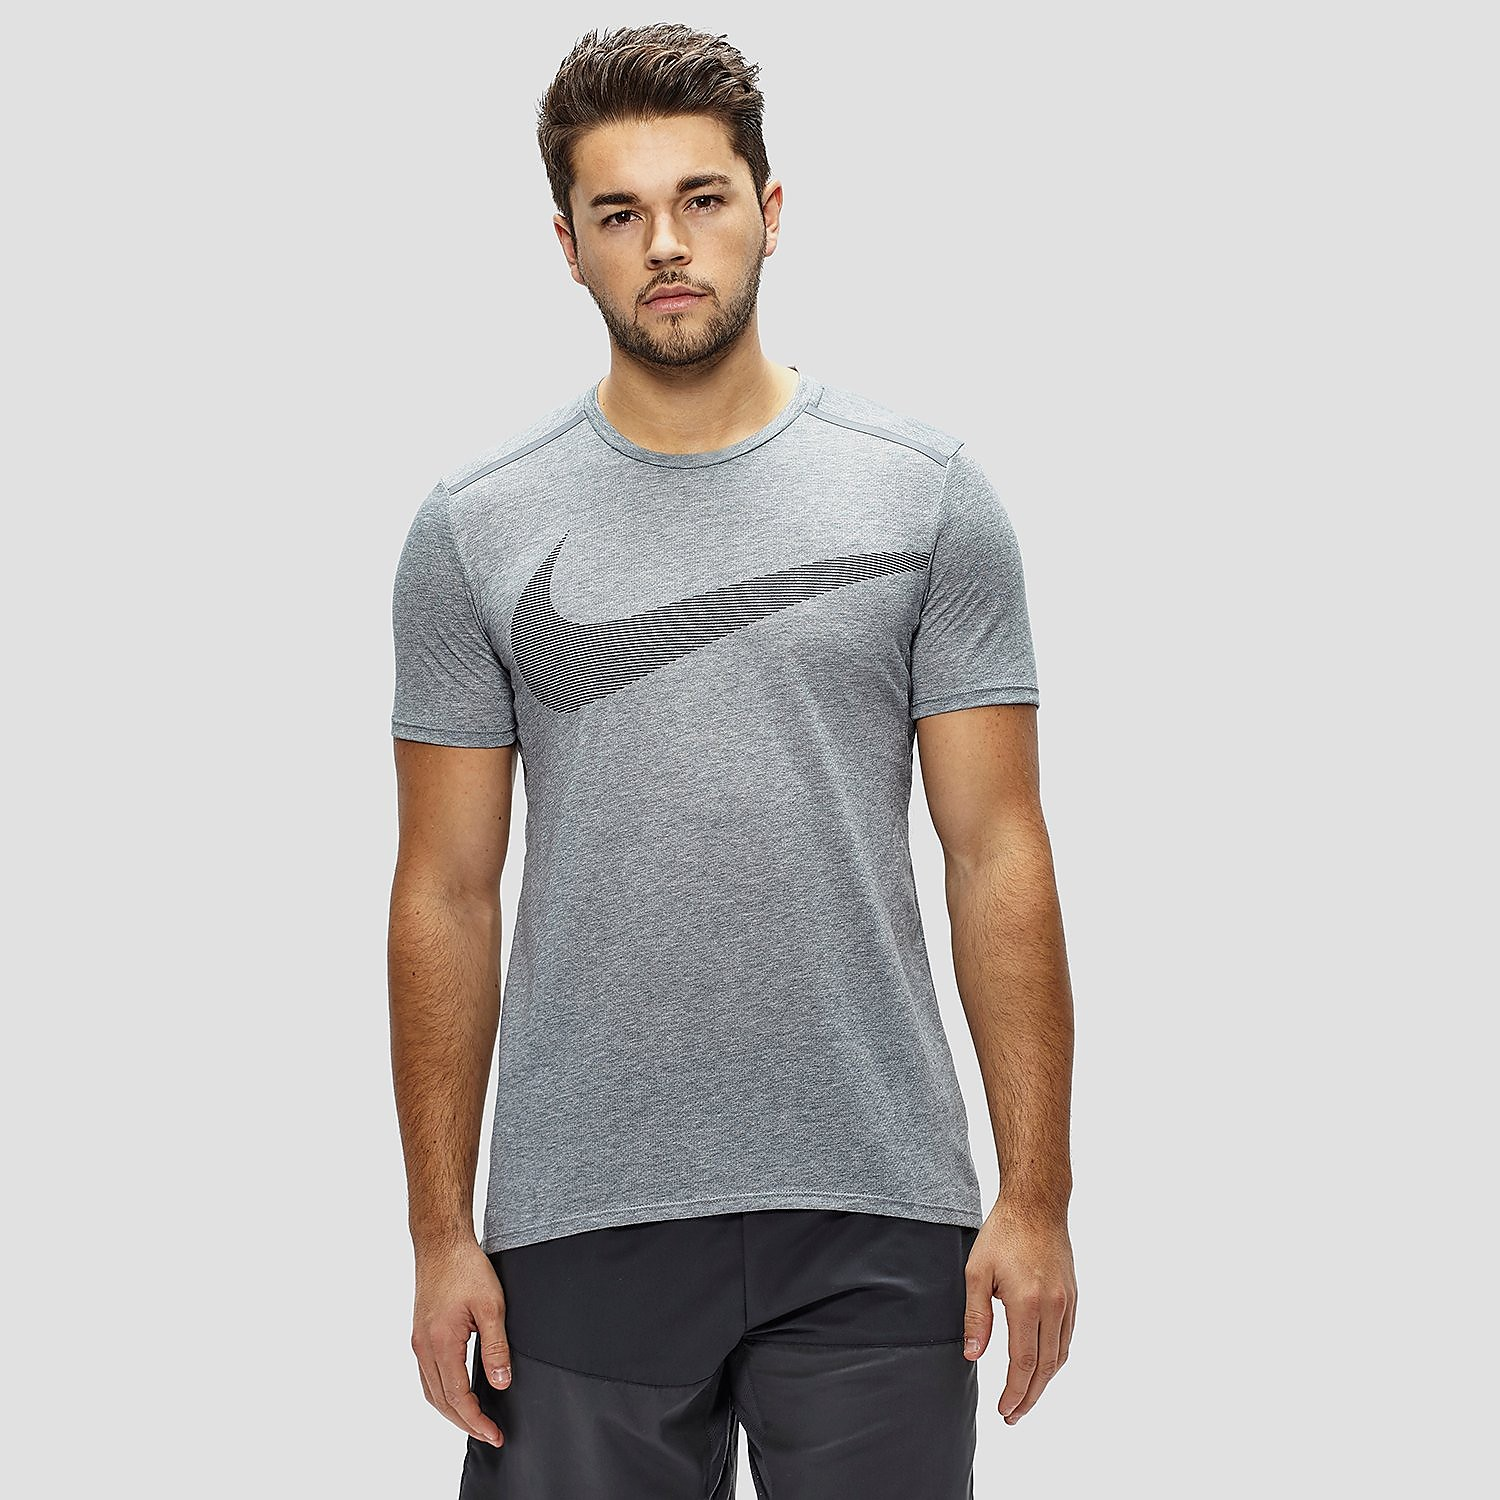 Nike Dry Short Sleeve T-Shirt